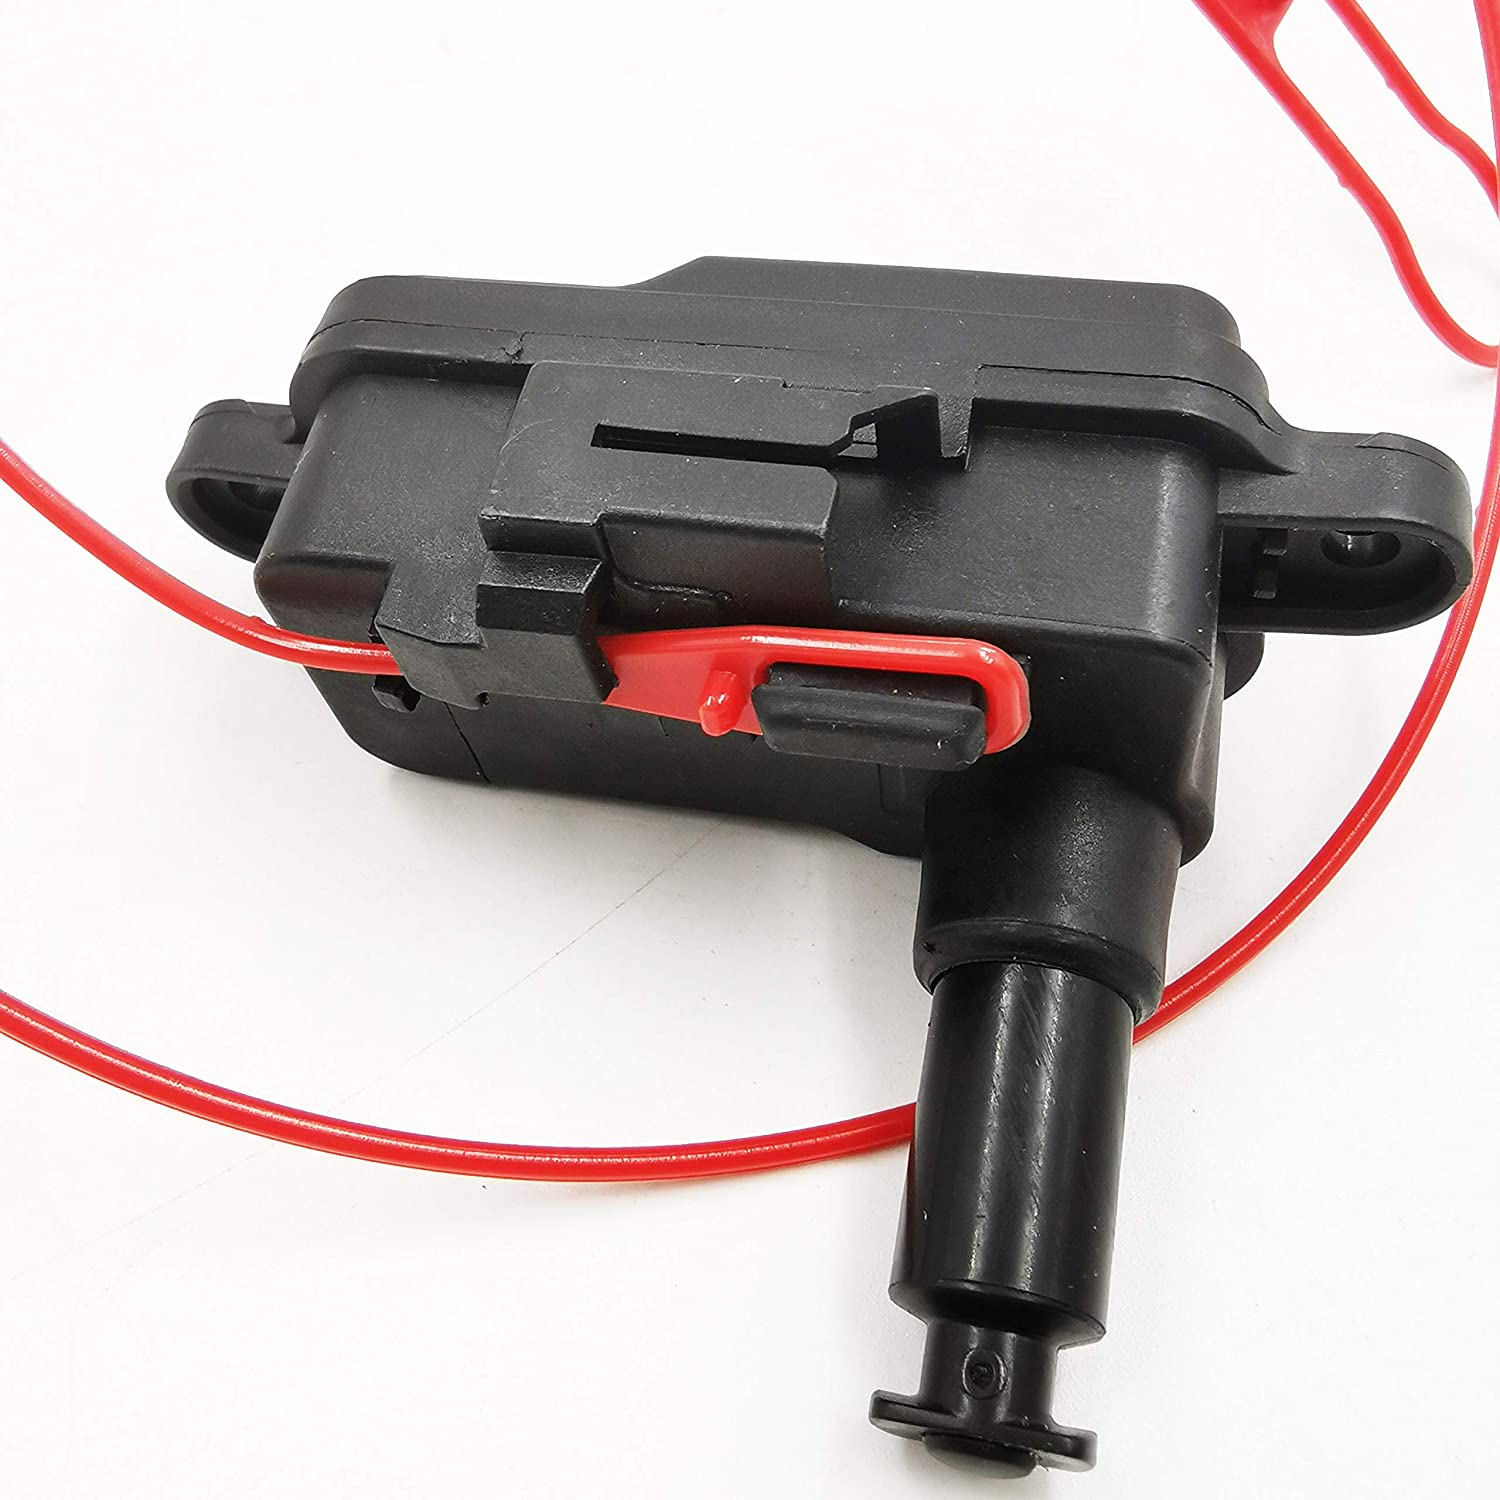 Fuel Filler Door Lock Actuator Compatible for A3 A6 A7 Q3 Q7 RS5 RS7 S3 S6 S7